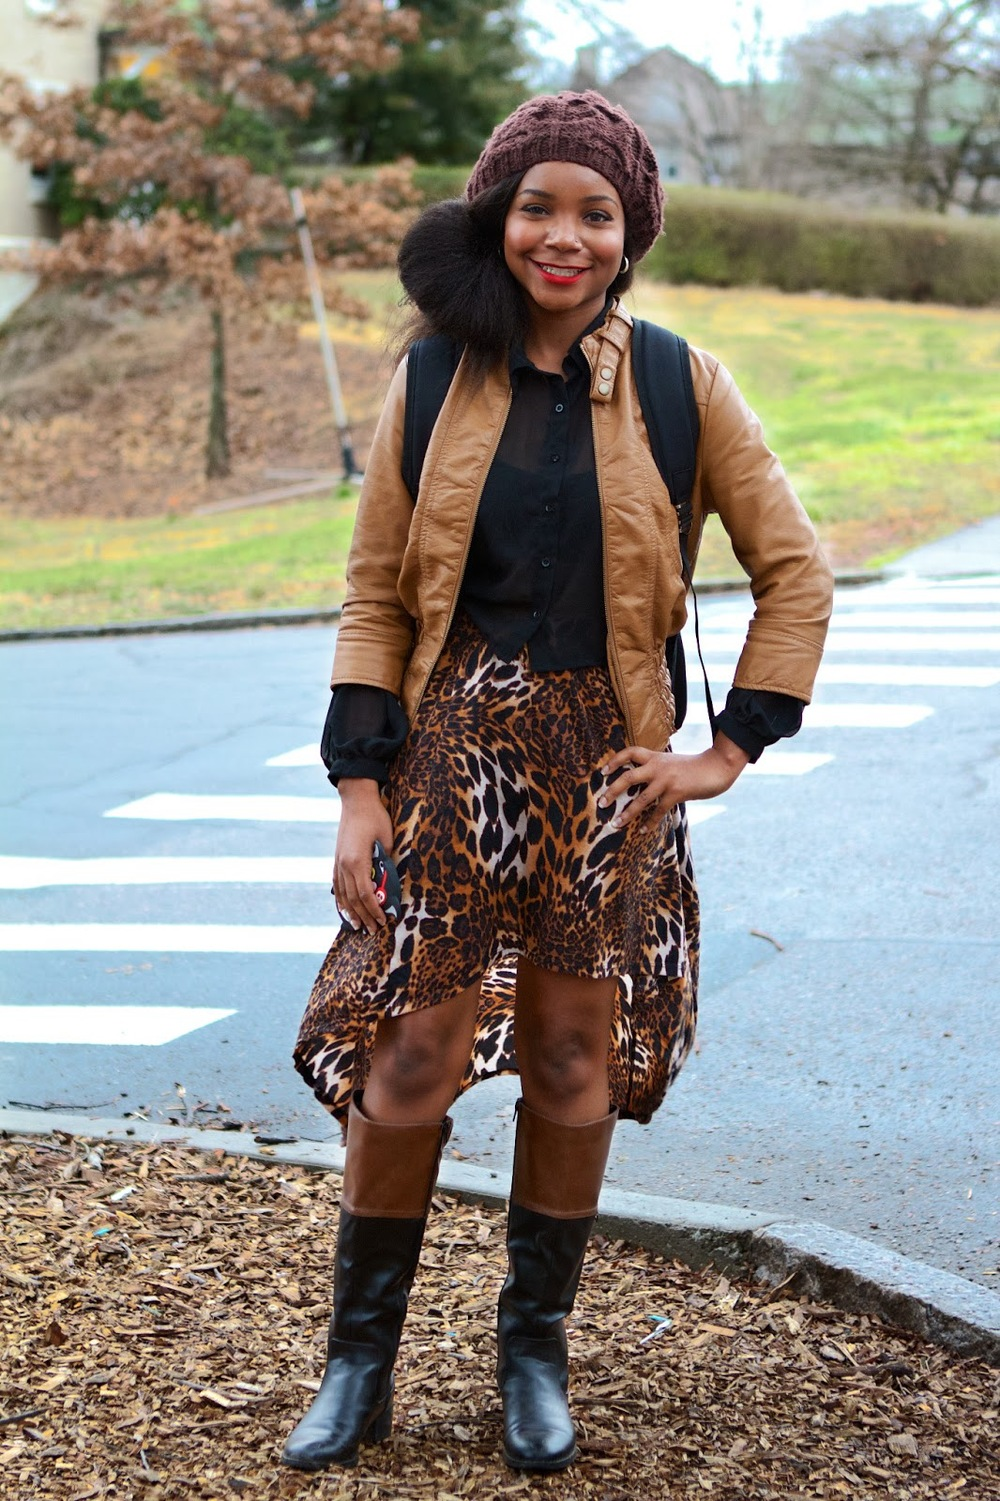 Ieshia Smith, a Duke University Junior wears a tan brown leather jacket over a see-through black shirt and a tiger print mullet dress. She accessorizes her look with a brown knit beanie, two tone brown leather boots and a blue and brown canvas leather trim backpack.